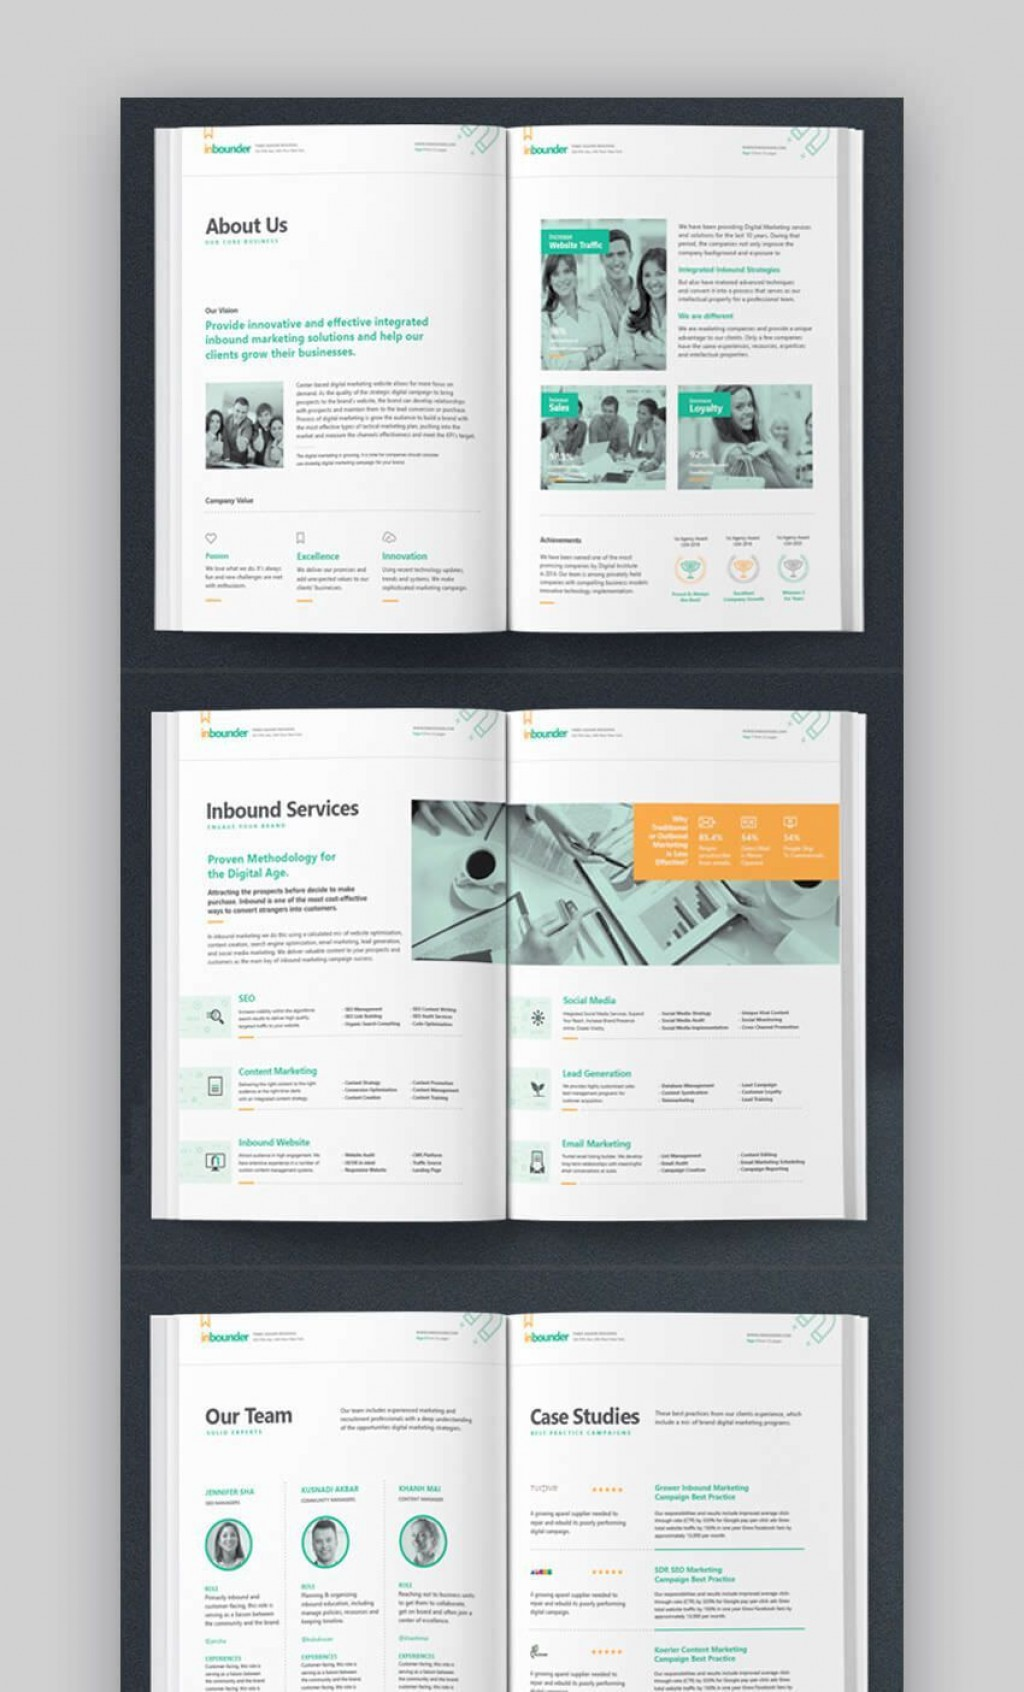 002 Outstanding Social Media Proposal Template 2019 High Resolution Large